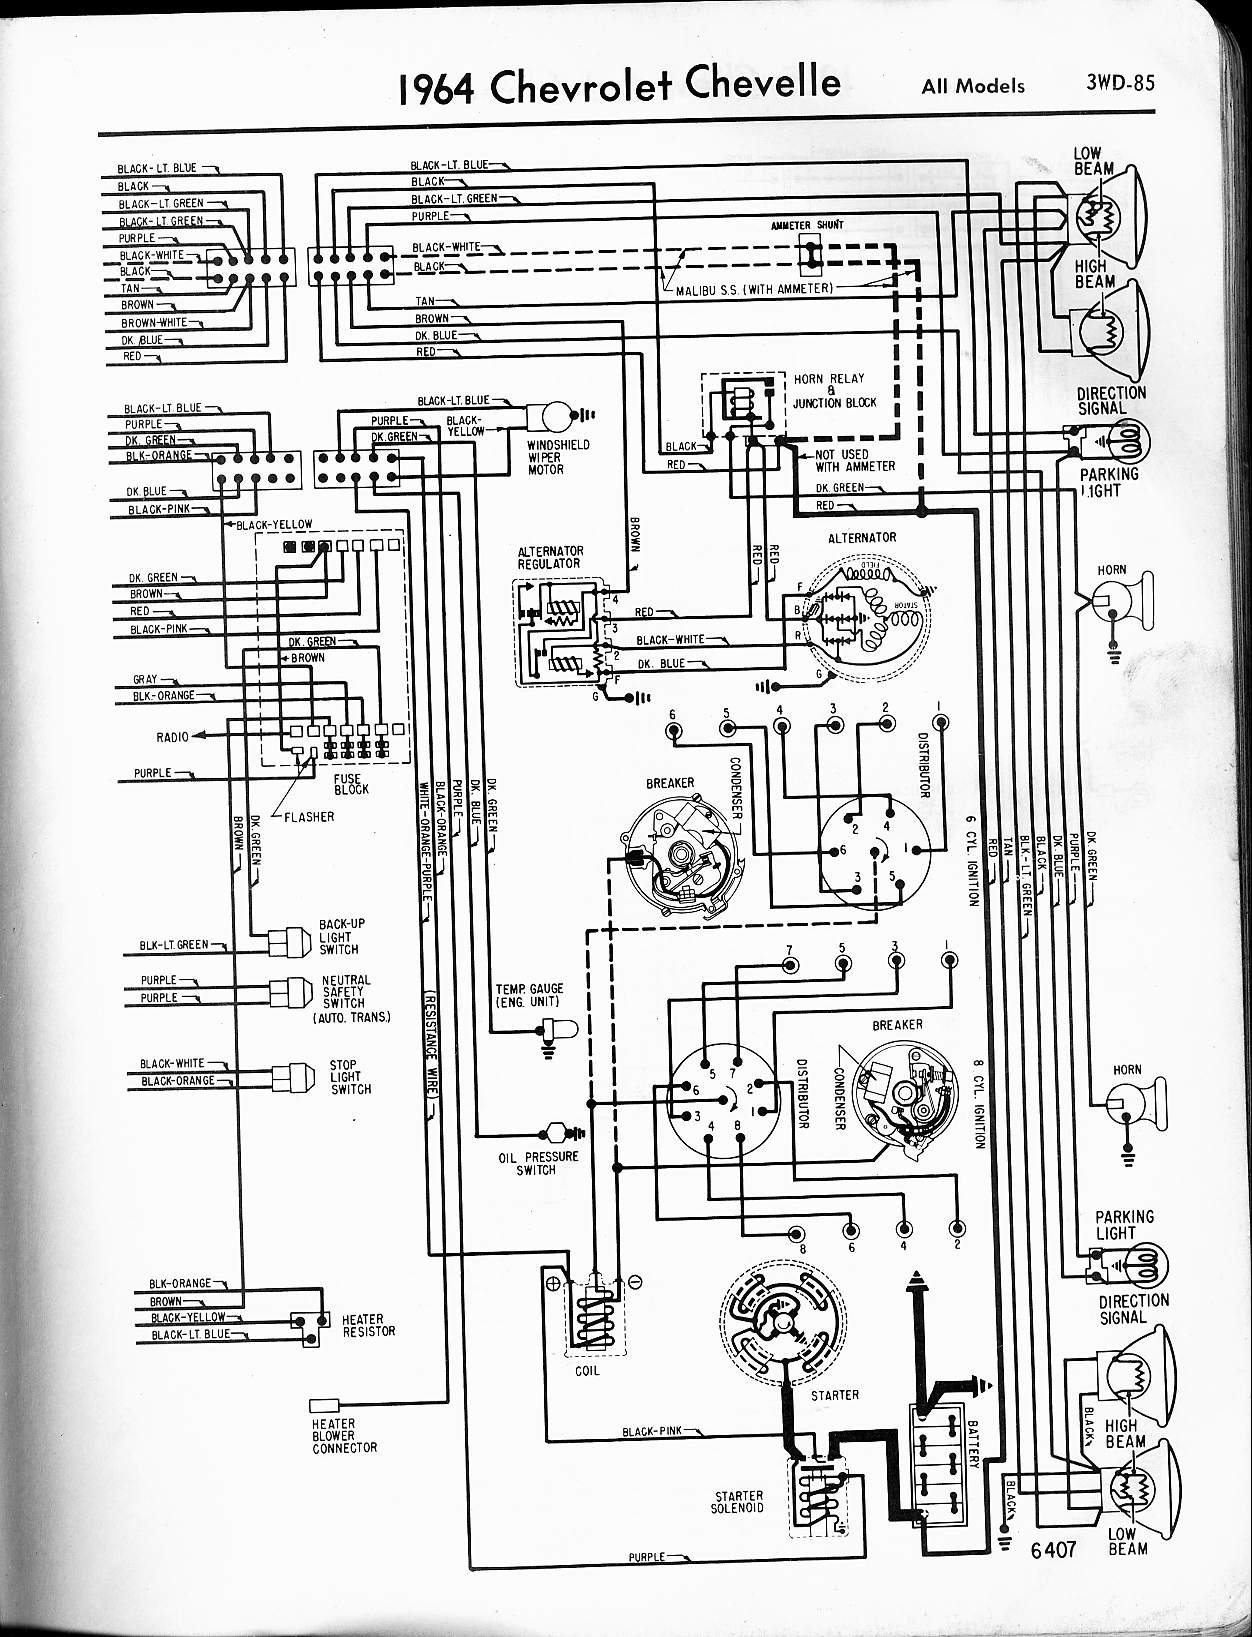 66 gto ignition switch wiring diagram detailed schematics diagram rh  mrskindsclass com 67 GTO Engine Wiring